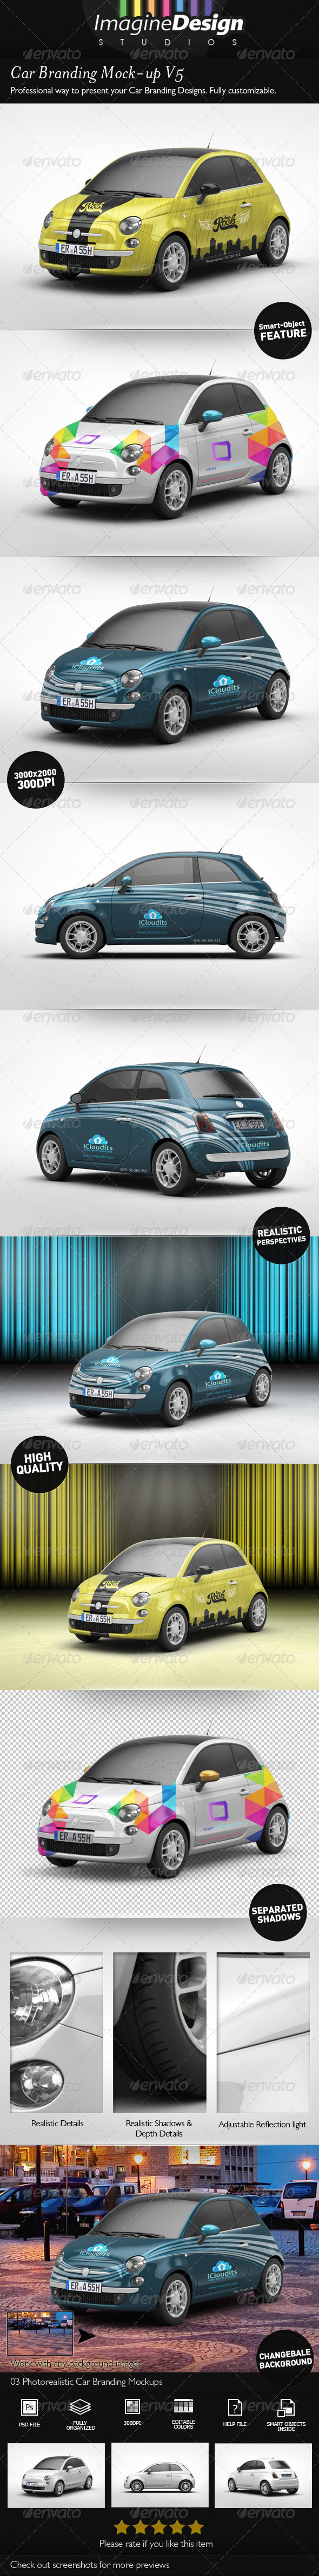 Car Branding Mock-Up V5 - Vehicle Wraps Print